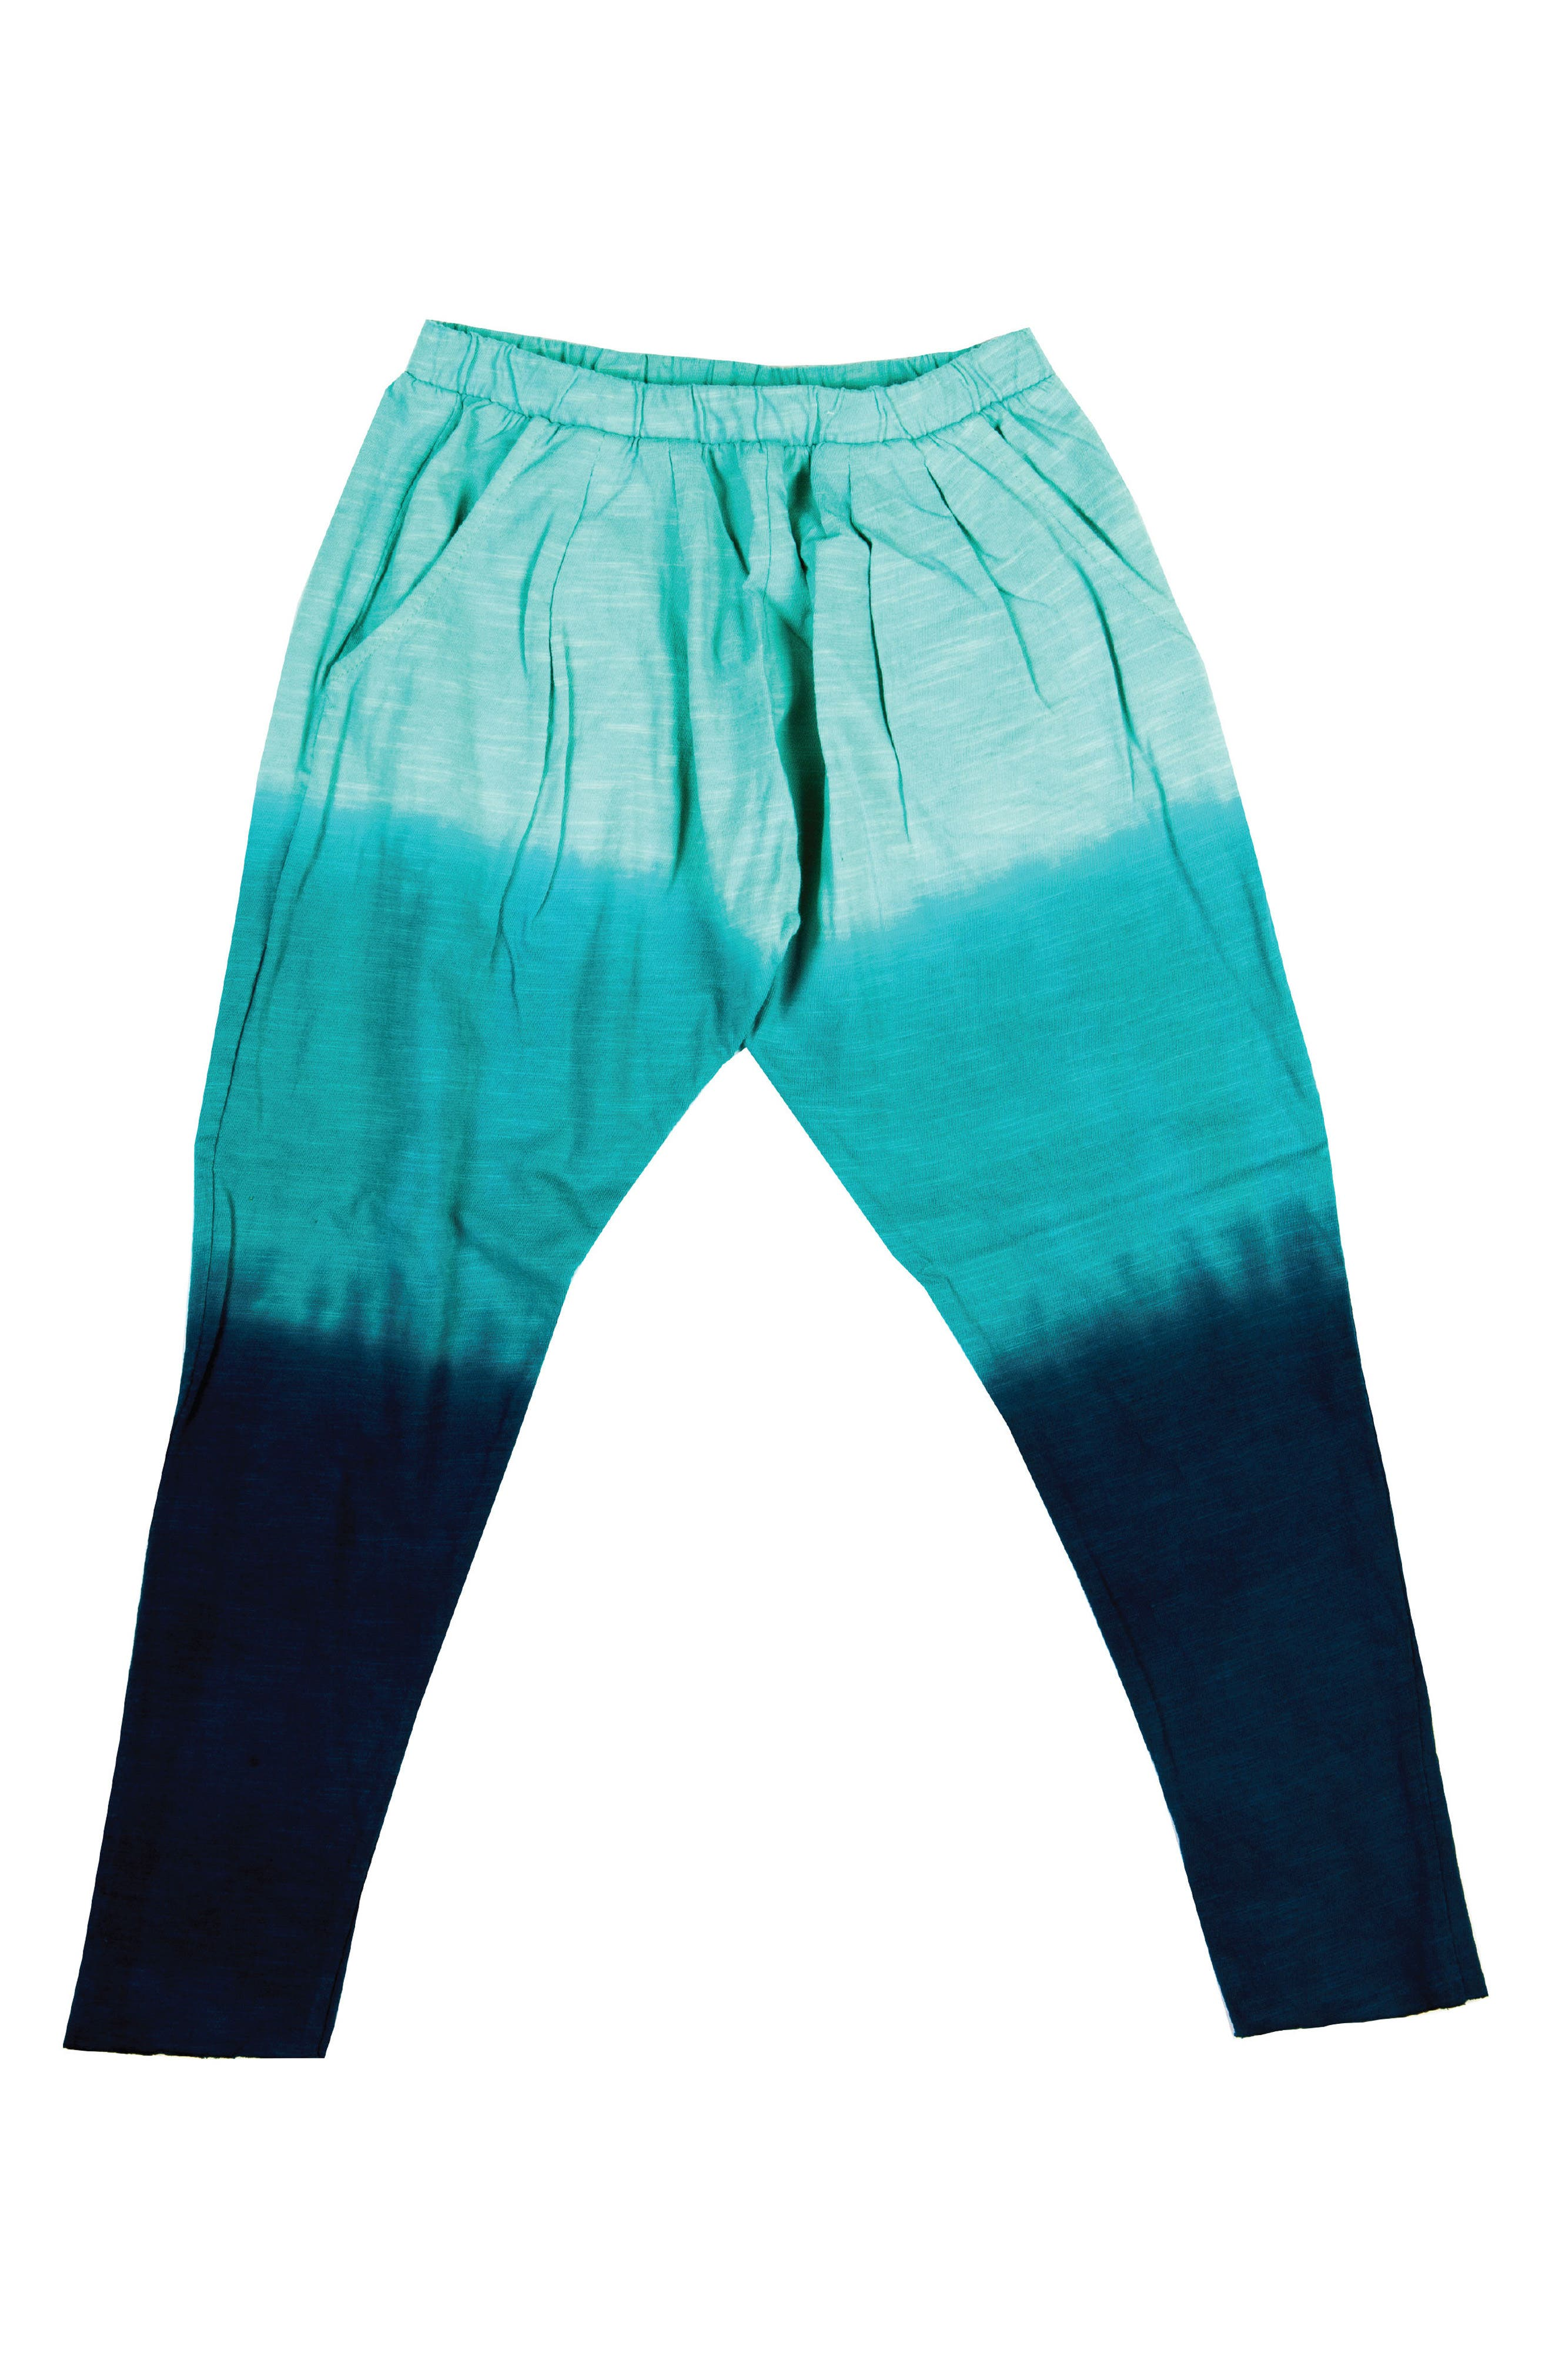 Main Image - BOWIE X JAMES Dip Dye Harem Pants (Toddler Girls, Little Girls & Big Girls)